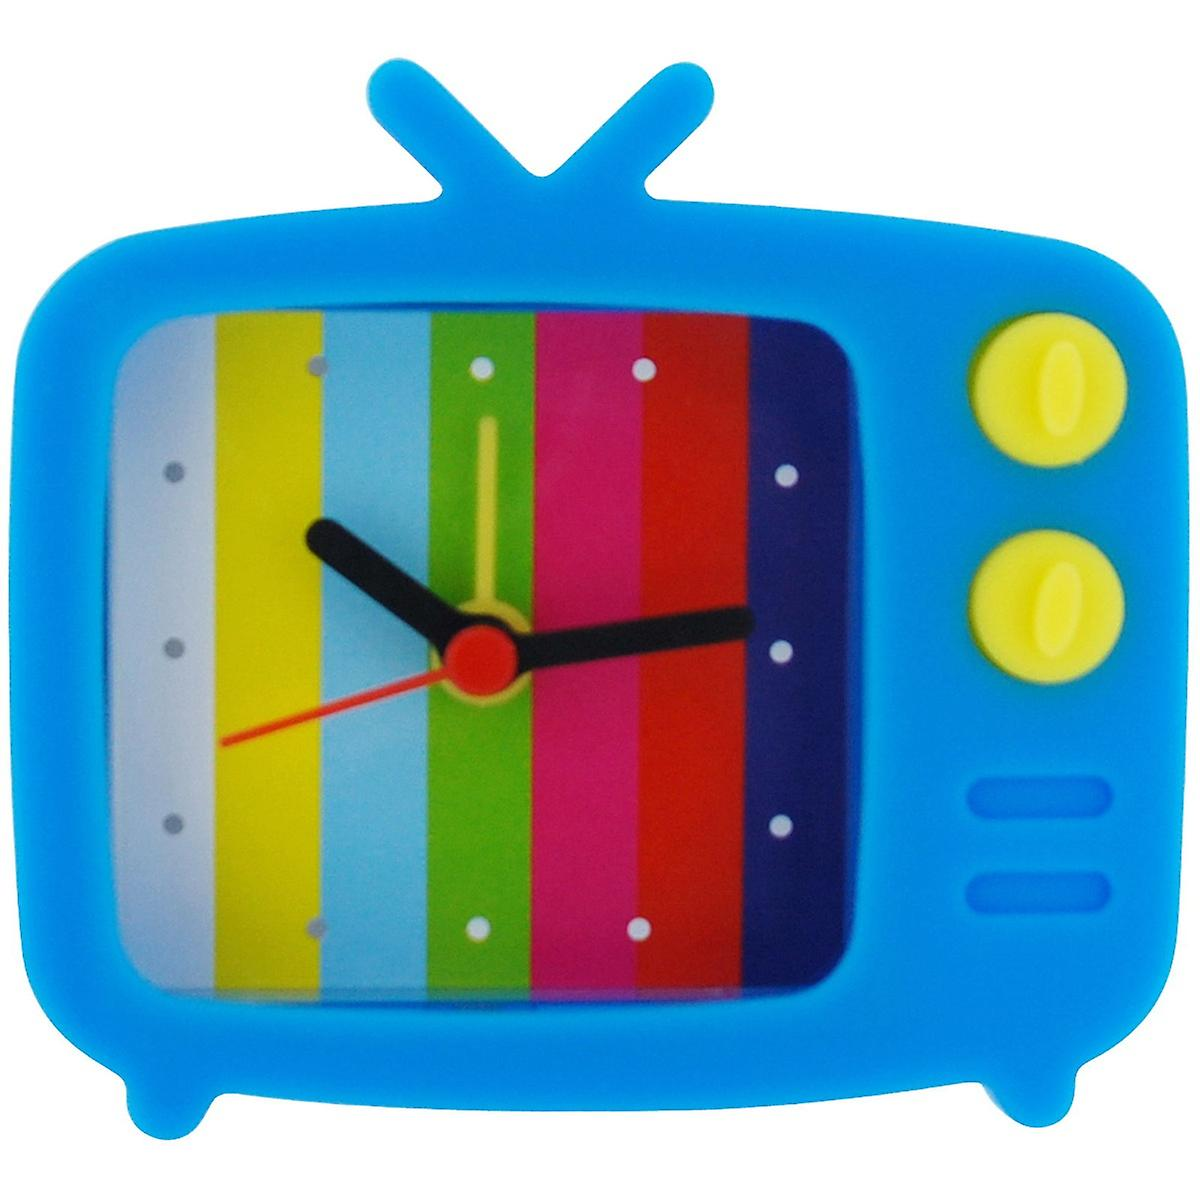 Clock Olivia Styleamp; Collection Picture Alarm Blue Tv Silicone Novelty The Test xrCQdBsht